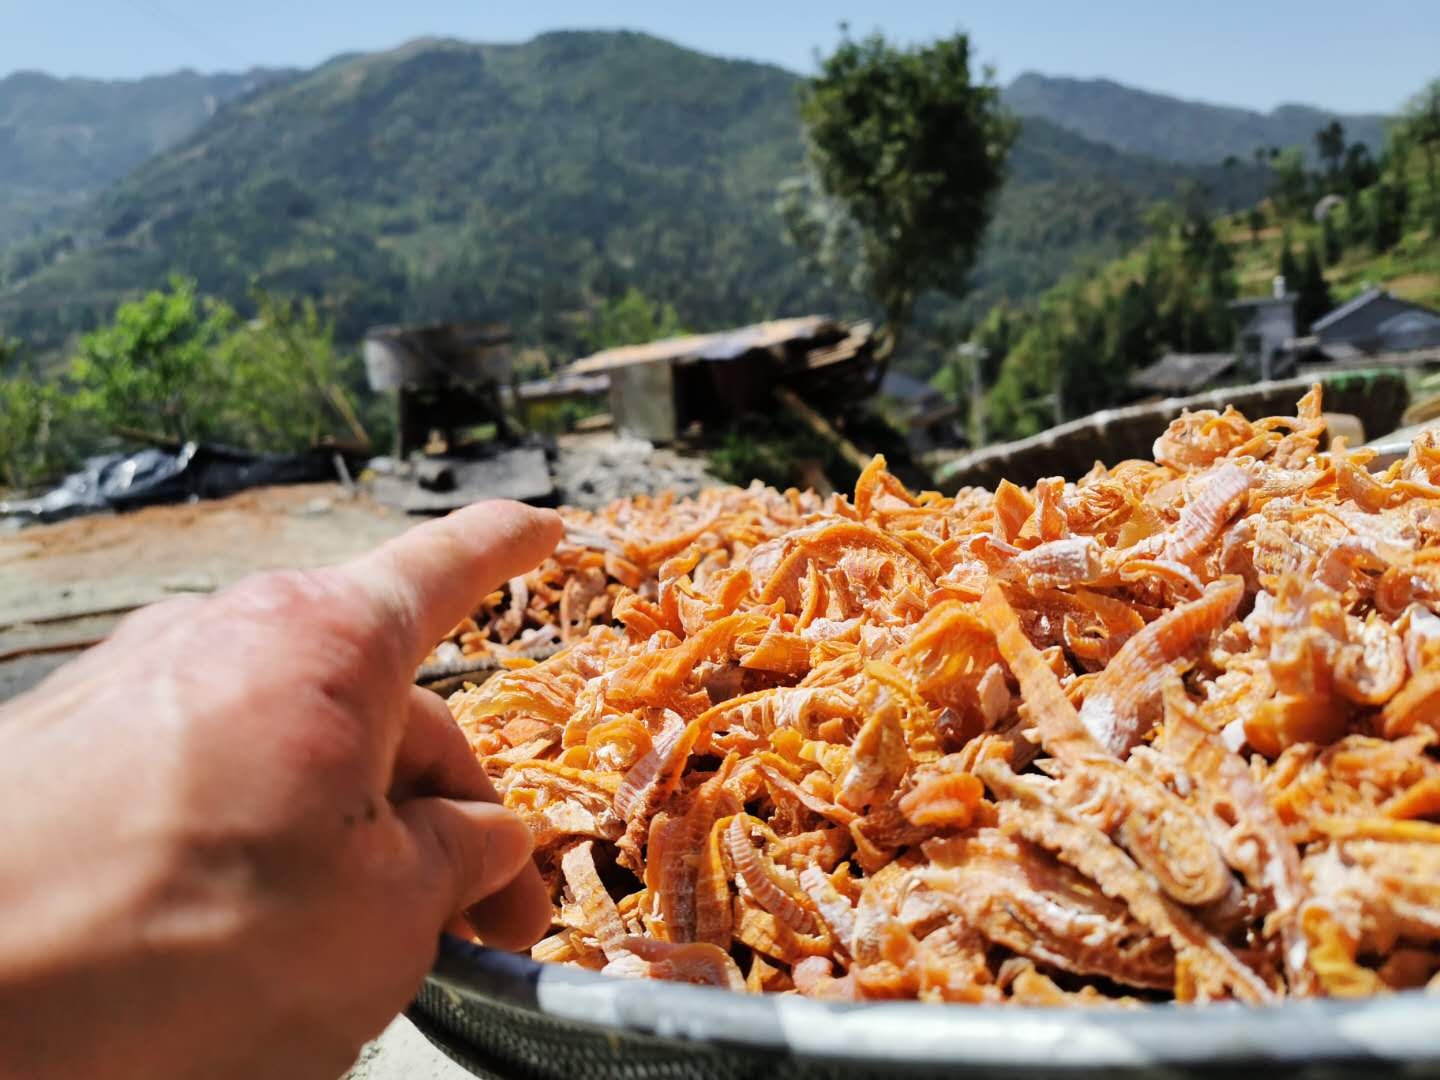 Nongfu mountain village handmade dried bamboo shoots in 2020